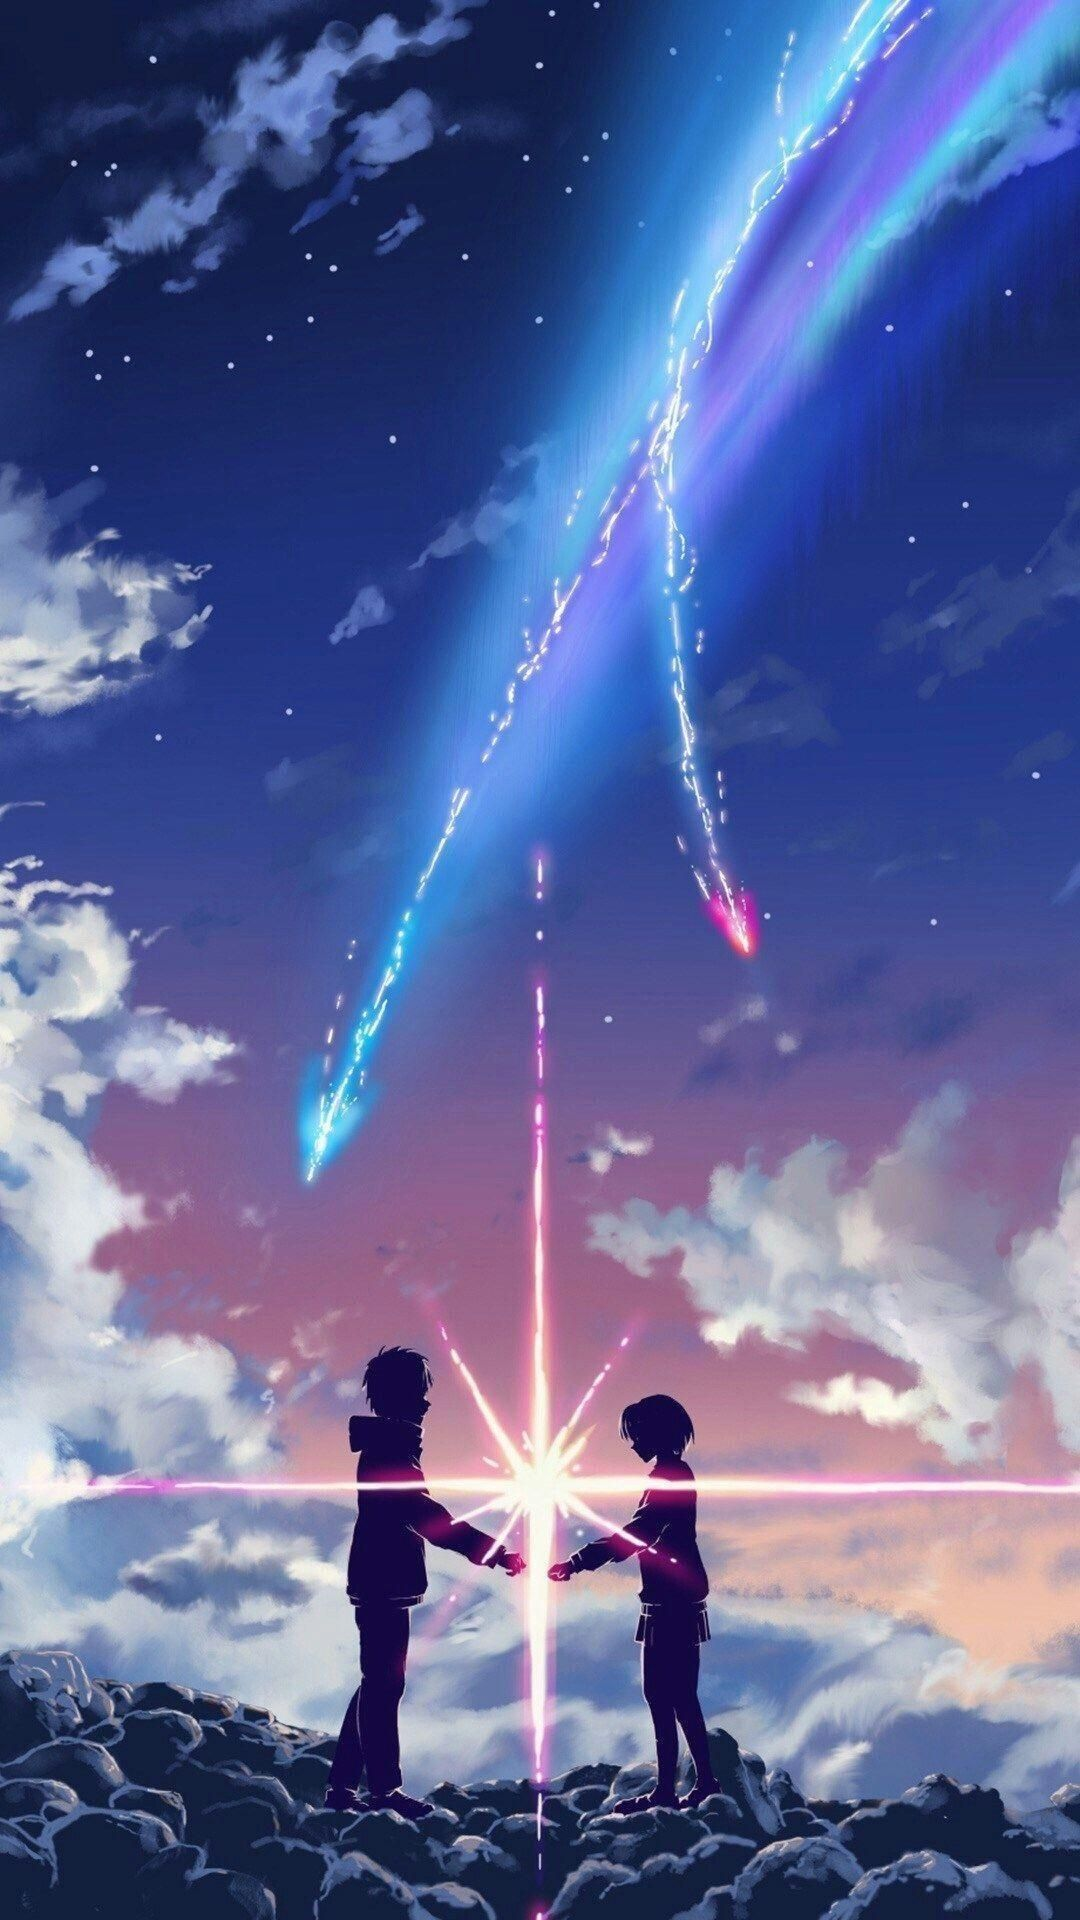 Google Anime Backgrounds : google, anime, backgrounds, Aesthetic, Theme, Wallpaper, Movie,, Anime, Backgrounds, Wallpapers,, Download